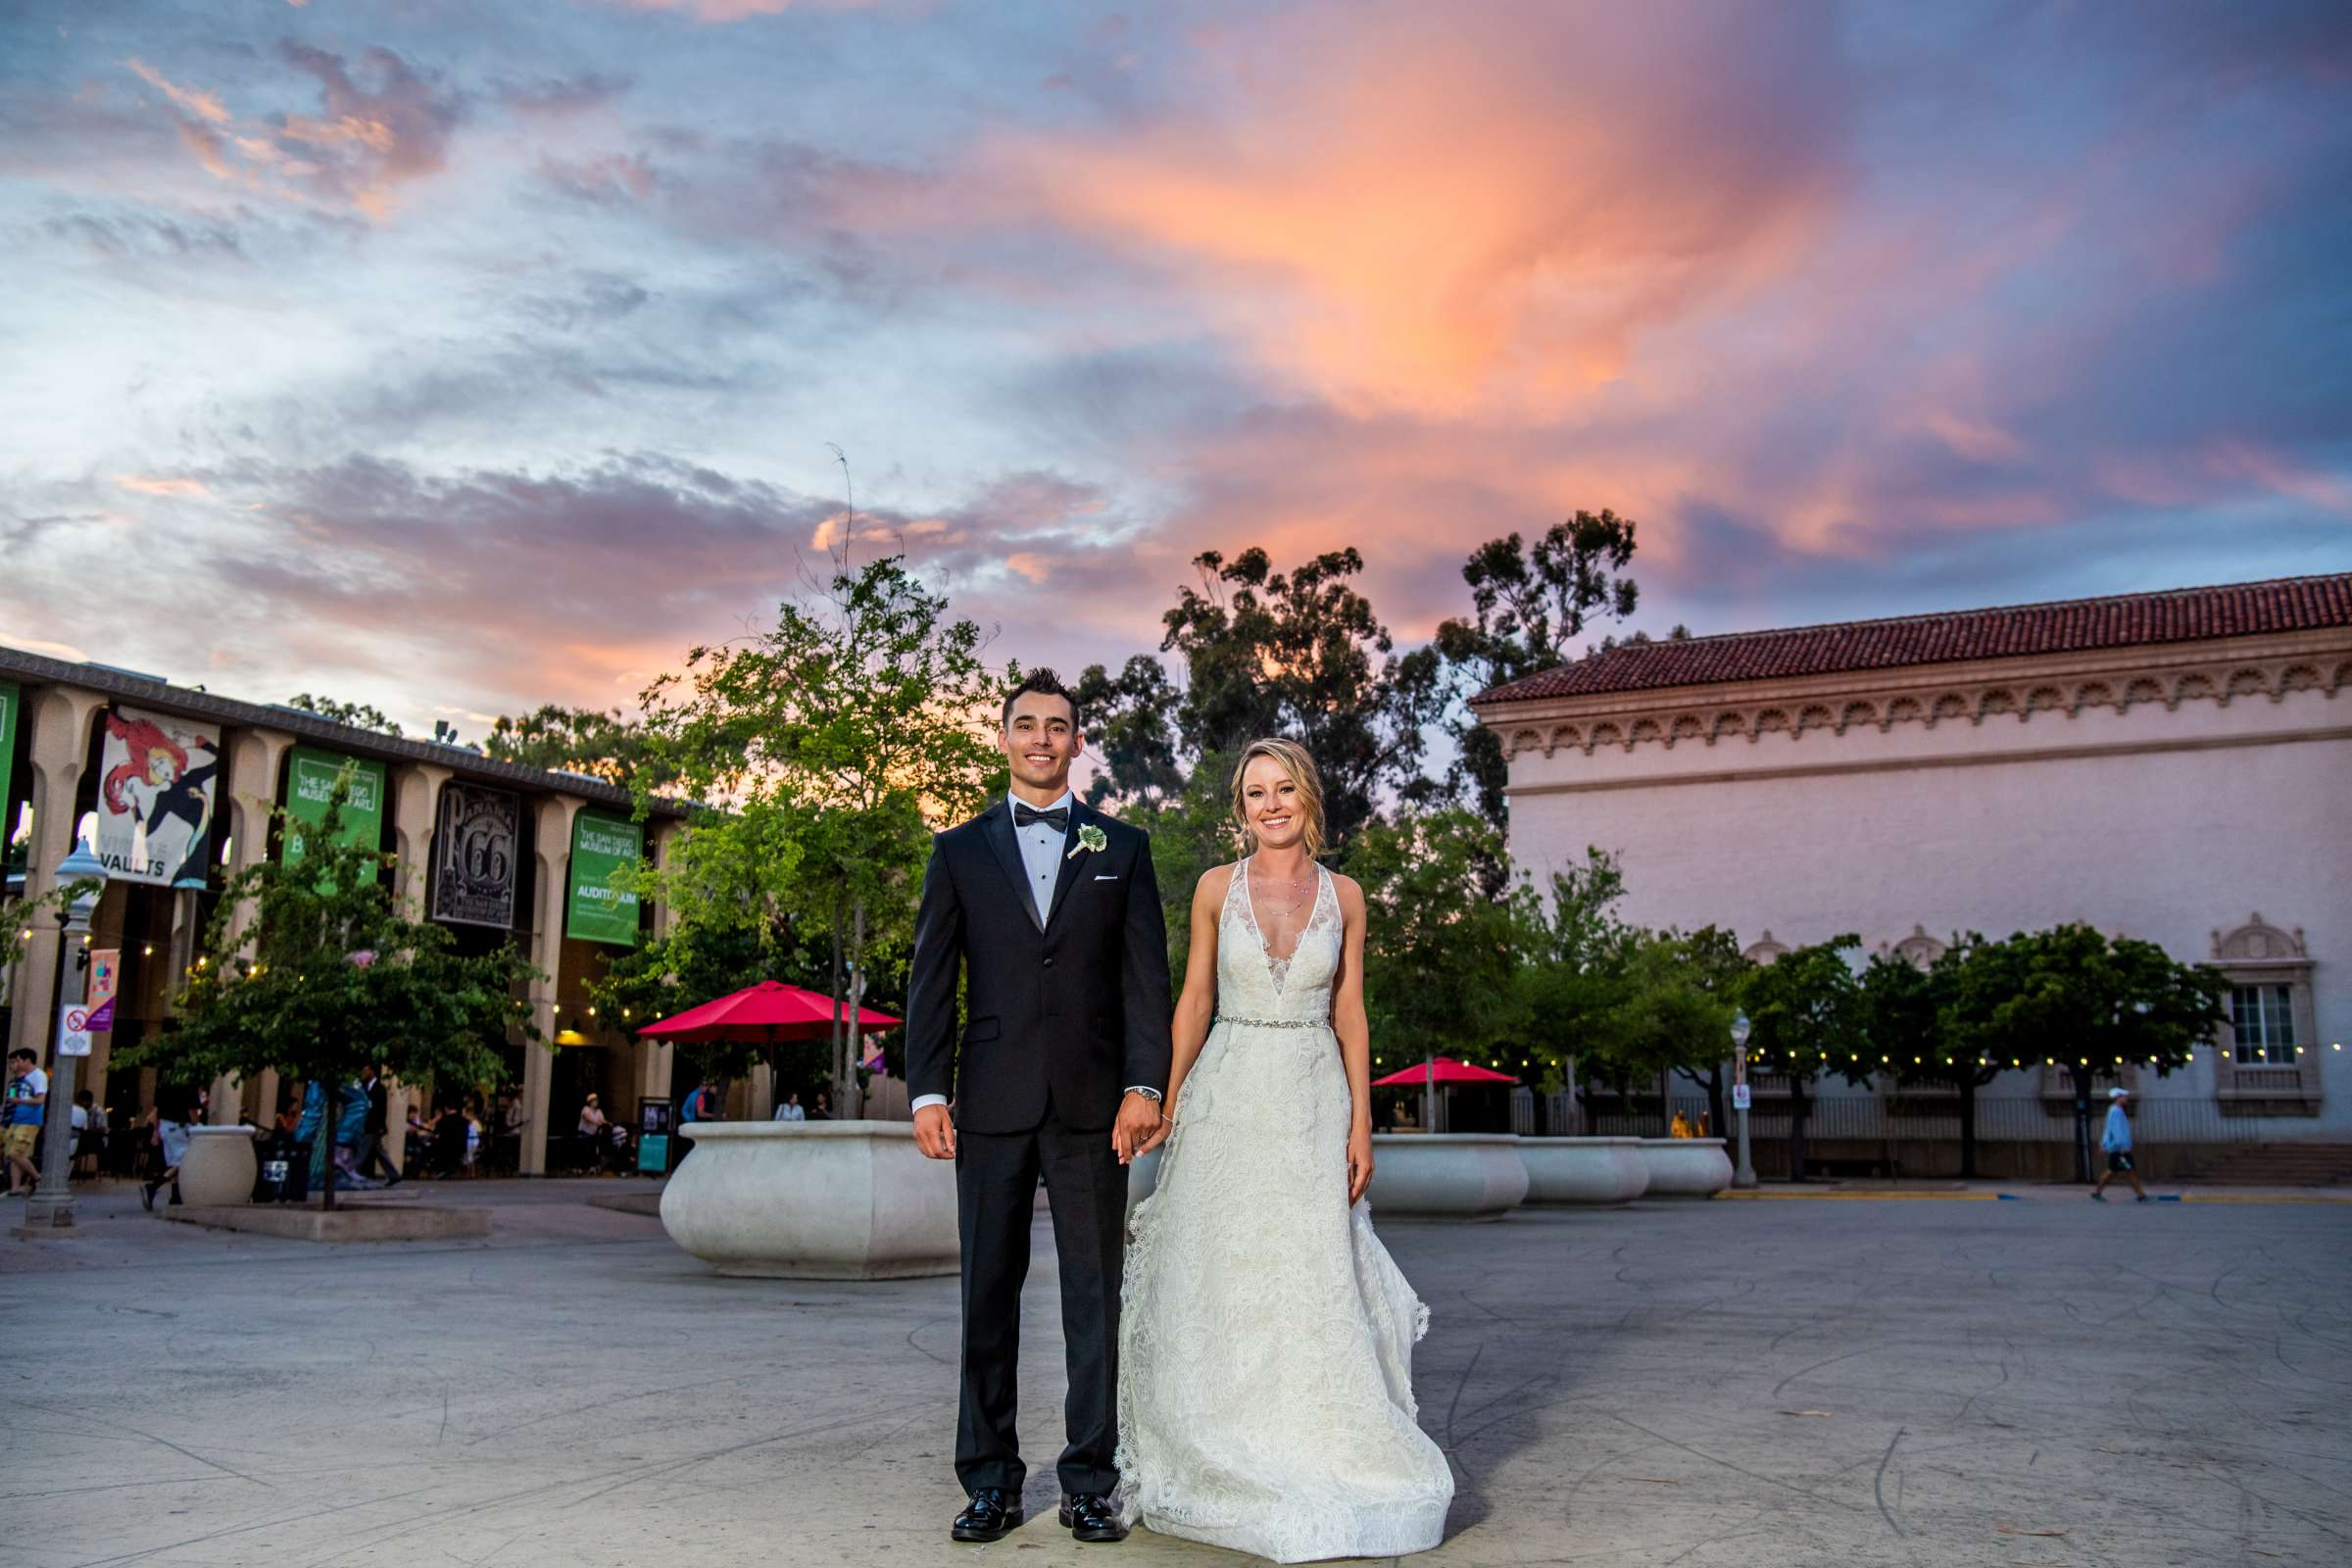 The Prado Wedding coordinated by Bliss Events, Sara and Marvin Wedding Photo #559643 by True Photography